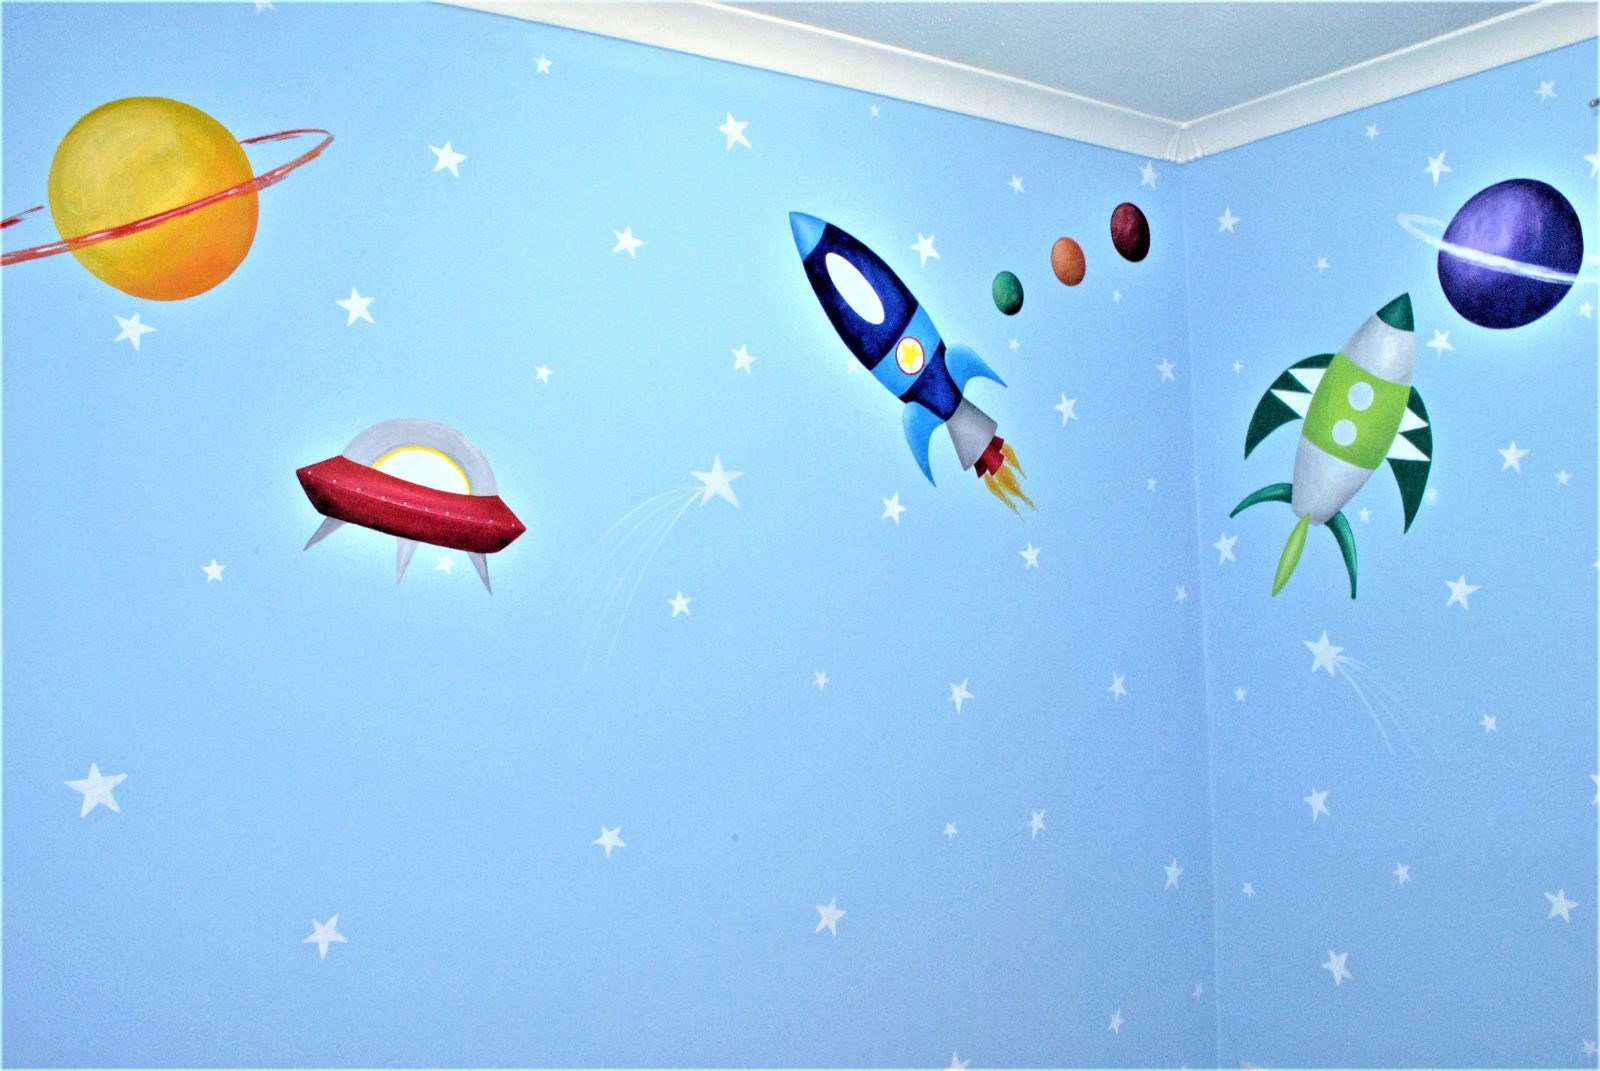 Space Themed Children's Wall Murals